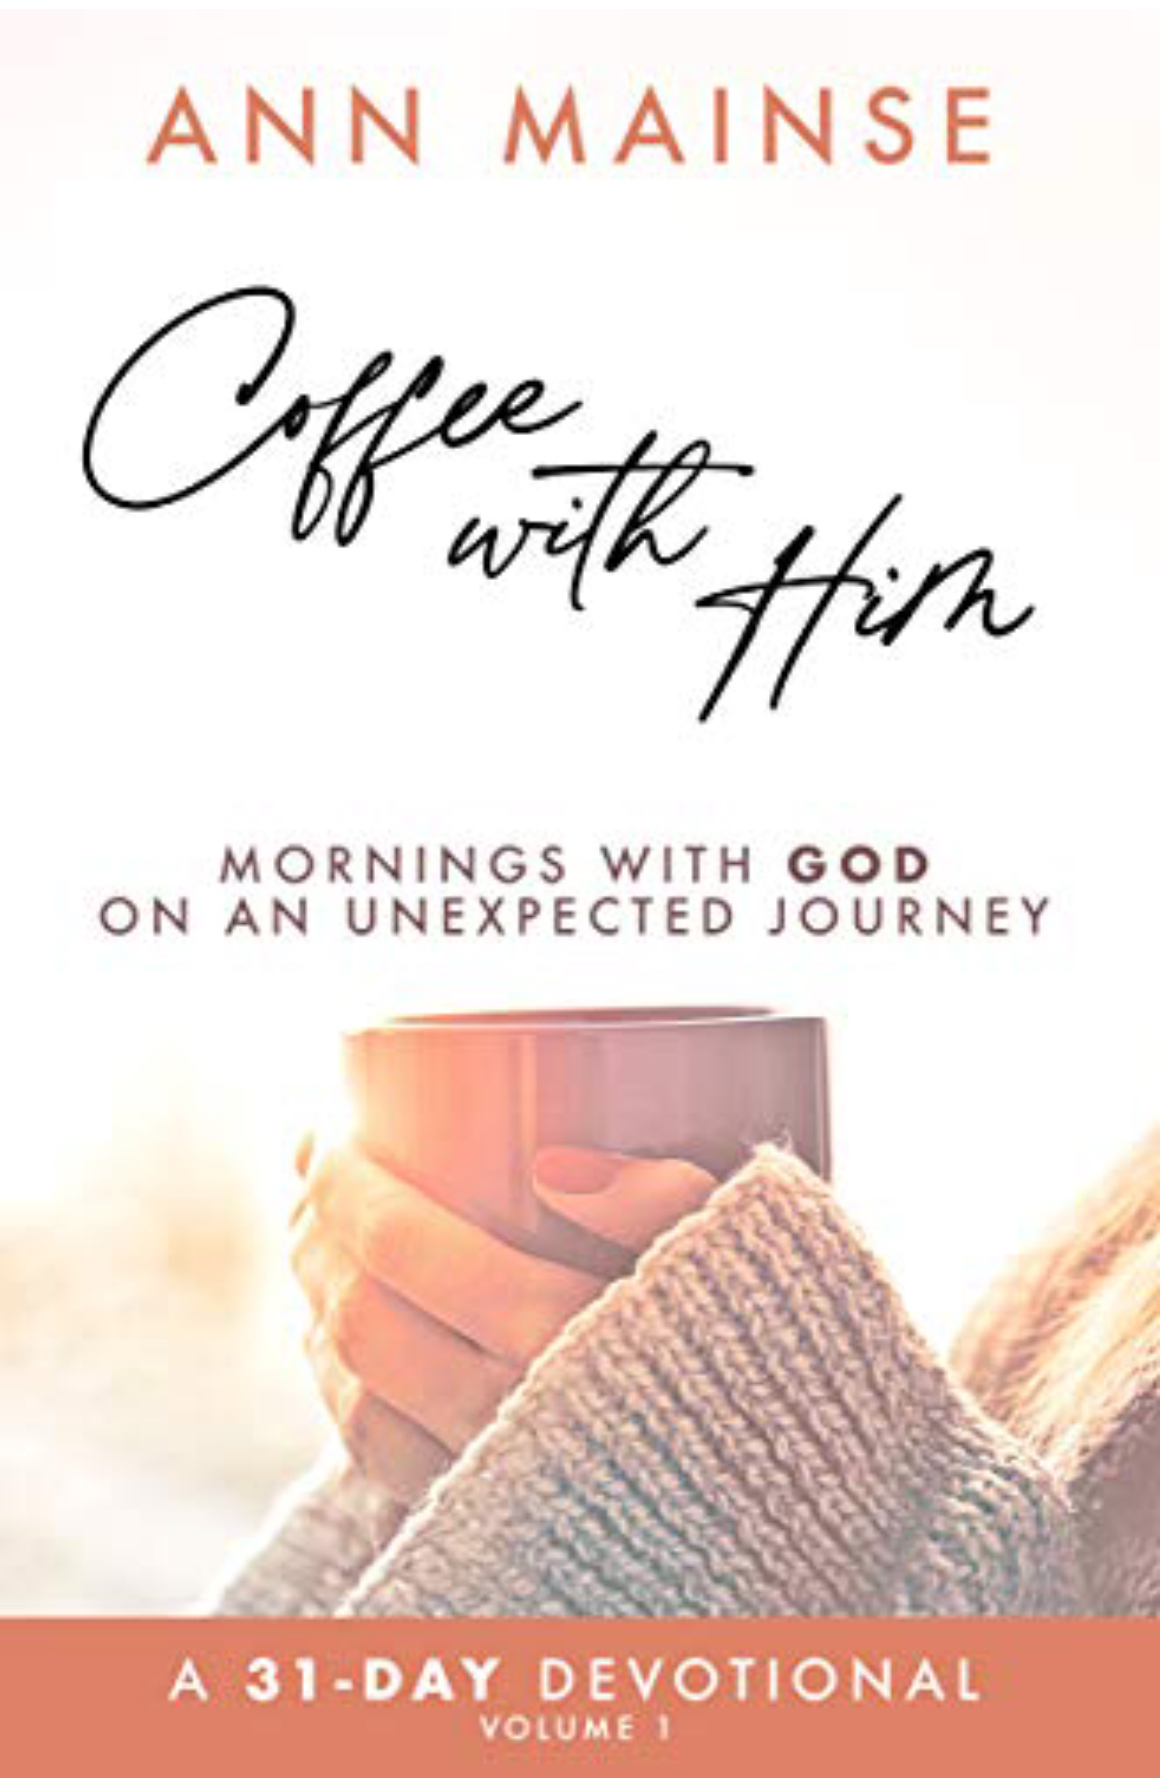 Book cover of Coffee With Him: Mornings With God on an Unexpected Journey by Ann Mainse. Picture of hands holding a coffee mug.